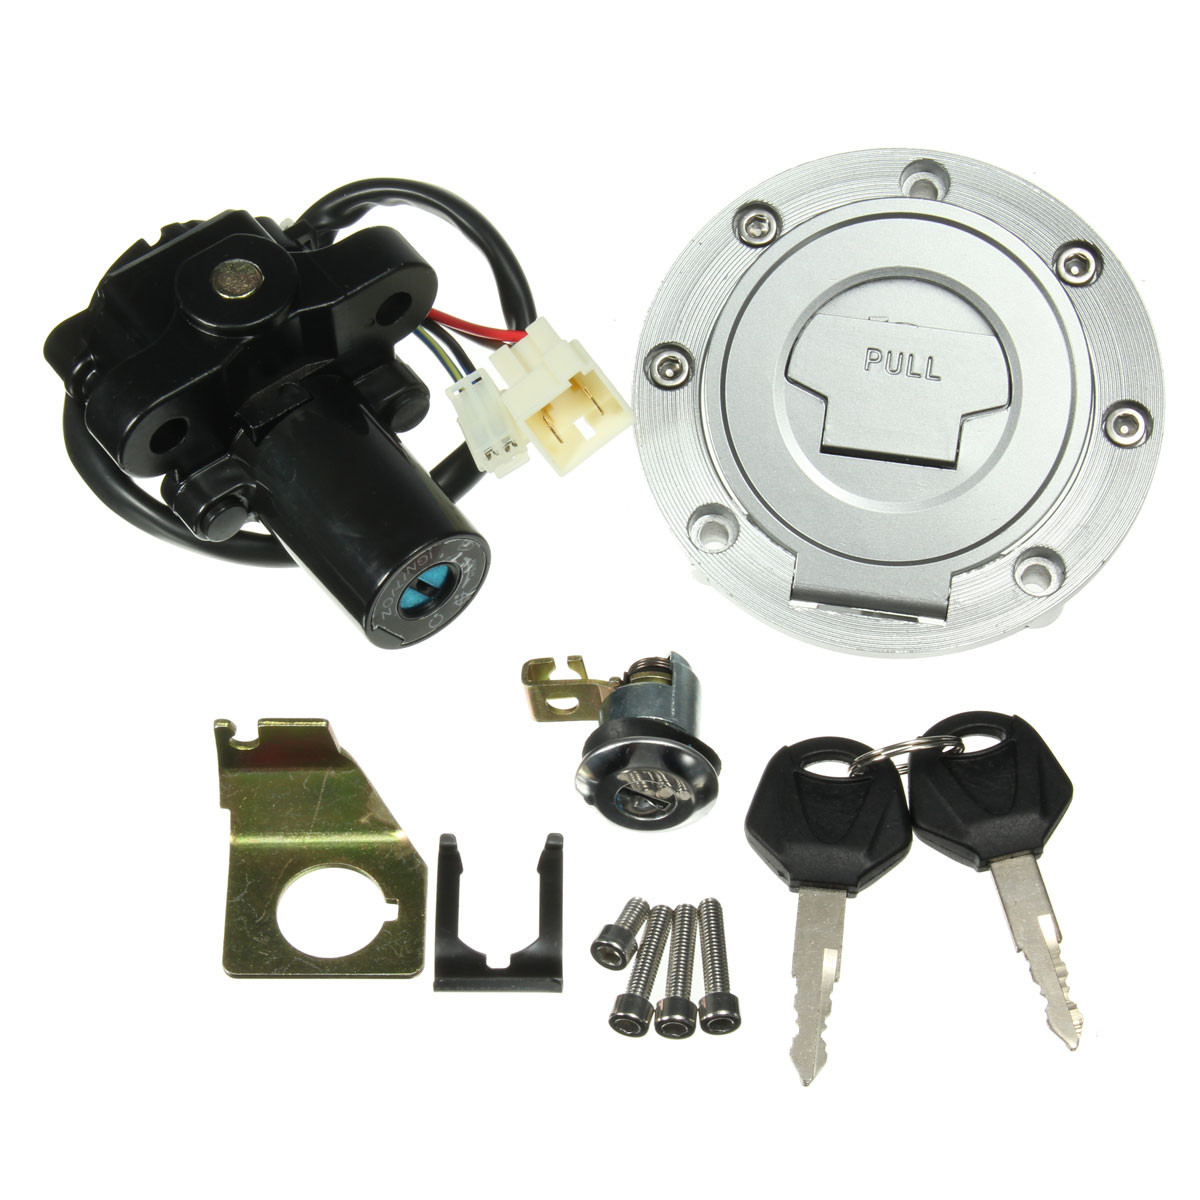 hight resolution of ignition switch seat lock fuel gas cap key set for yamaha yzf r1 r6 furthermore yamaha r6 keyless gas cap on yamaha r6 gas cap diagram